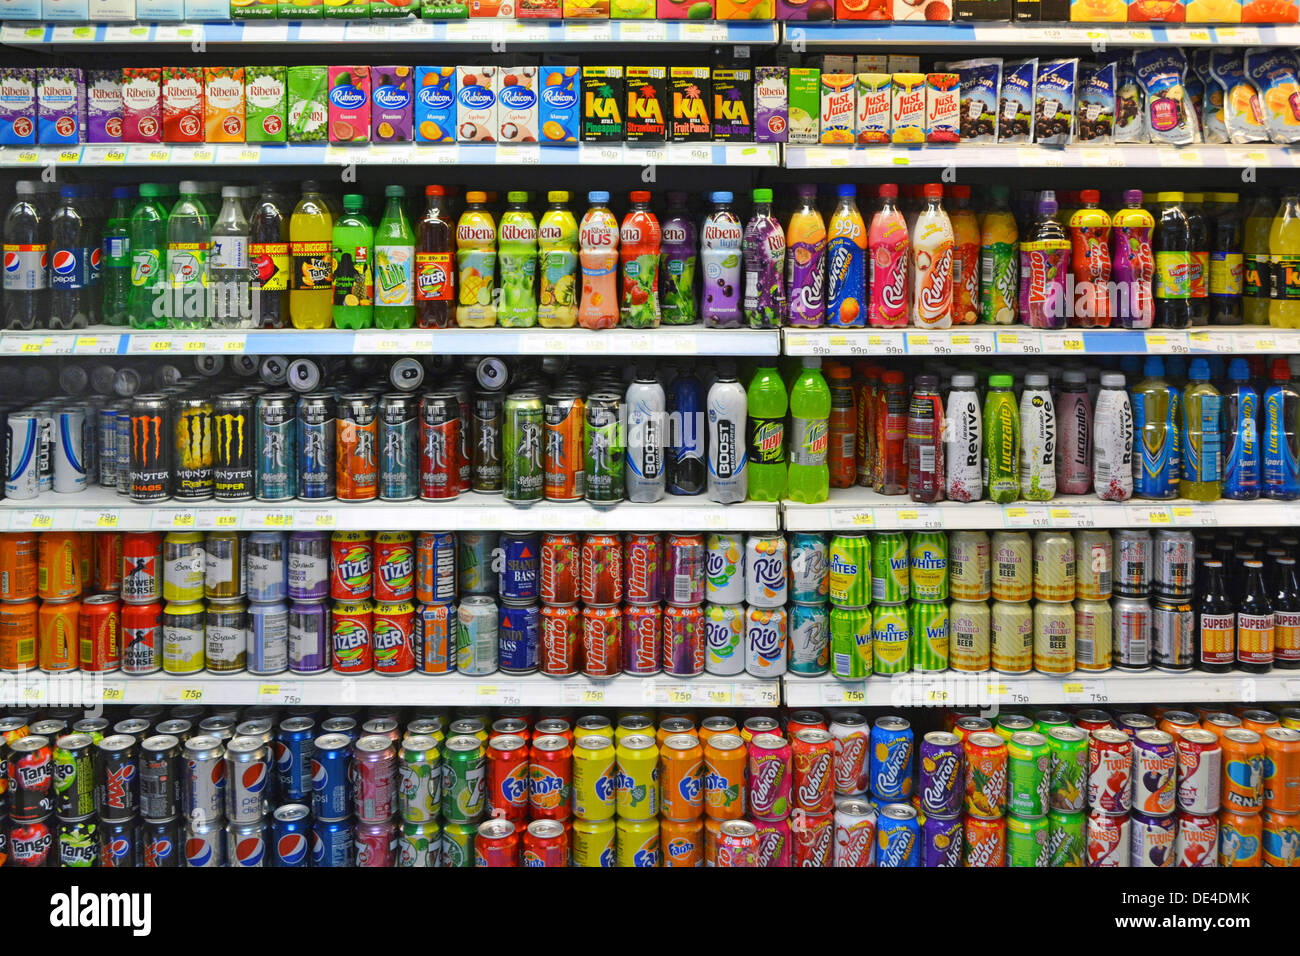 Possible tax on soft drink cans & bottles with some sugary high sugar content & co2 fizzy drinks on shelving inside convenience shop London England UK - Stock Image